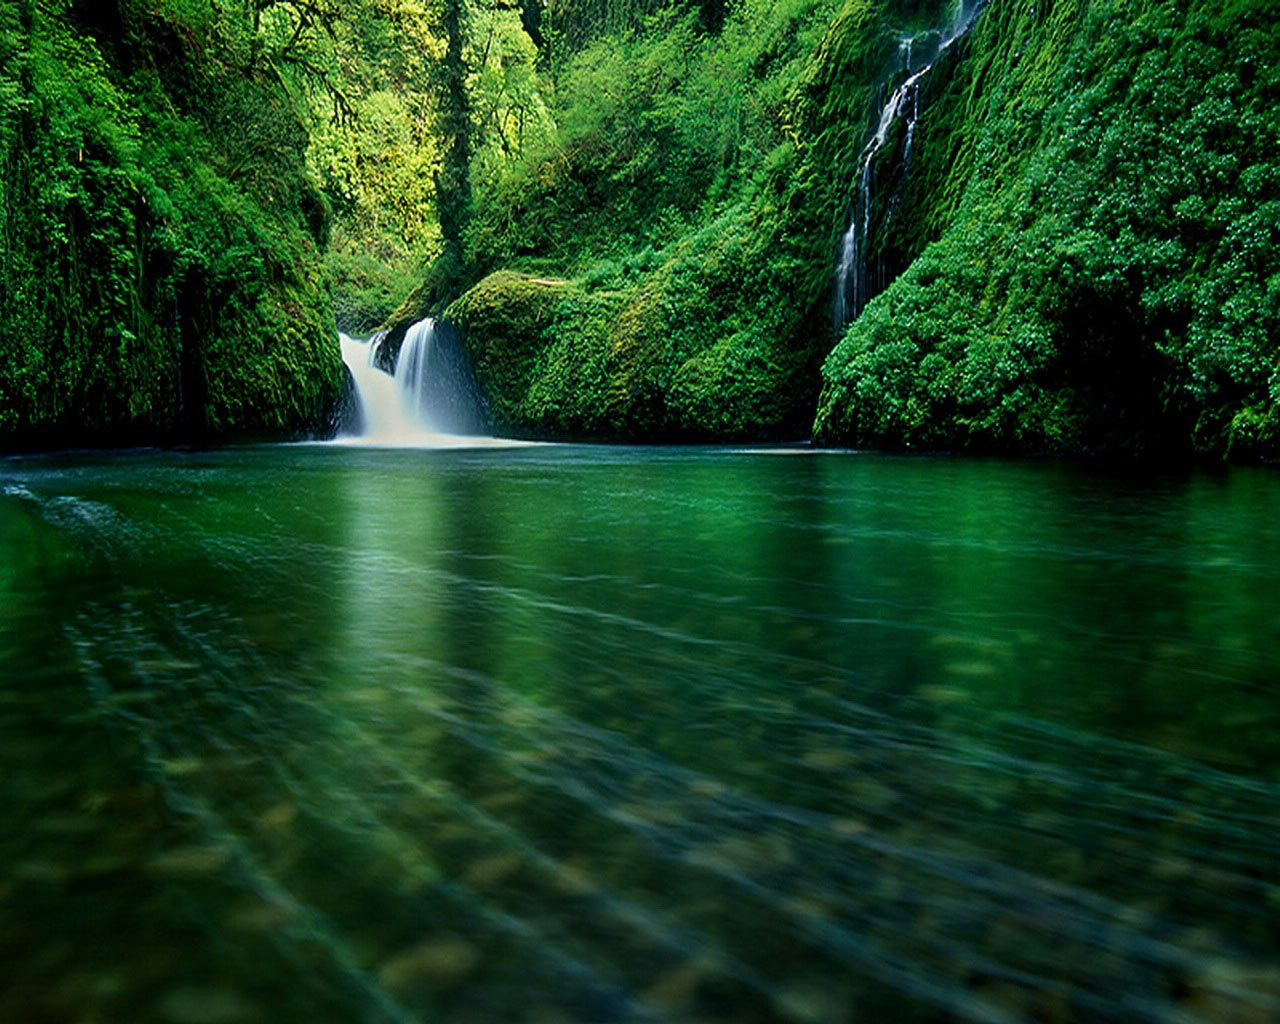 Unique wallpaper 50 most exotic river hd wallpaper part 1 - Amazon wallpaper hd ...